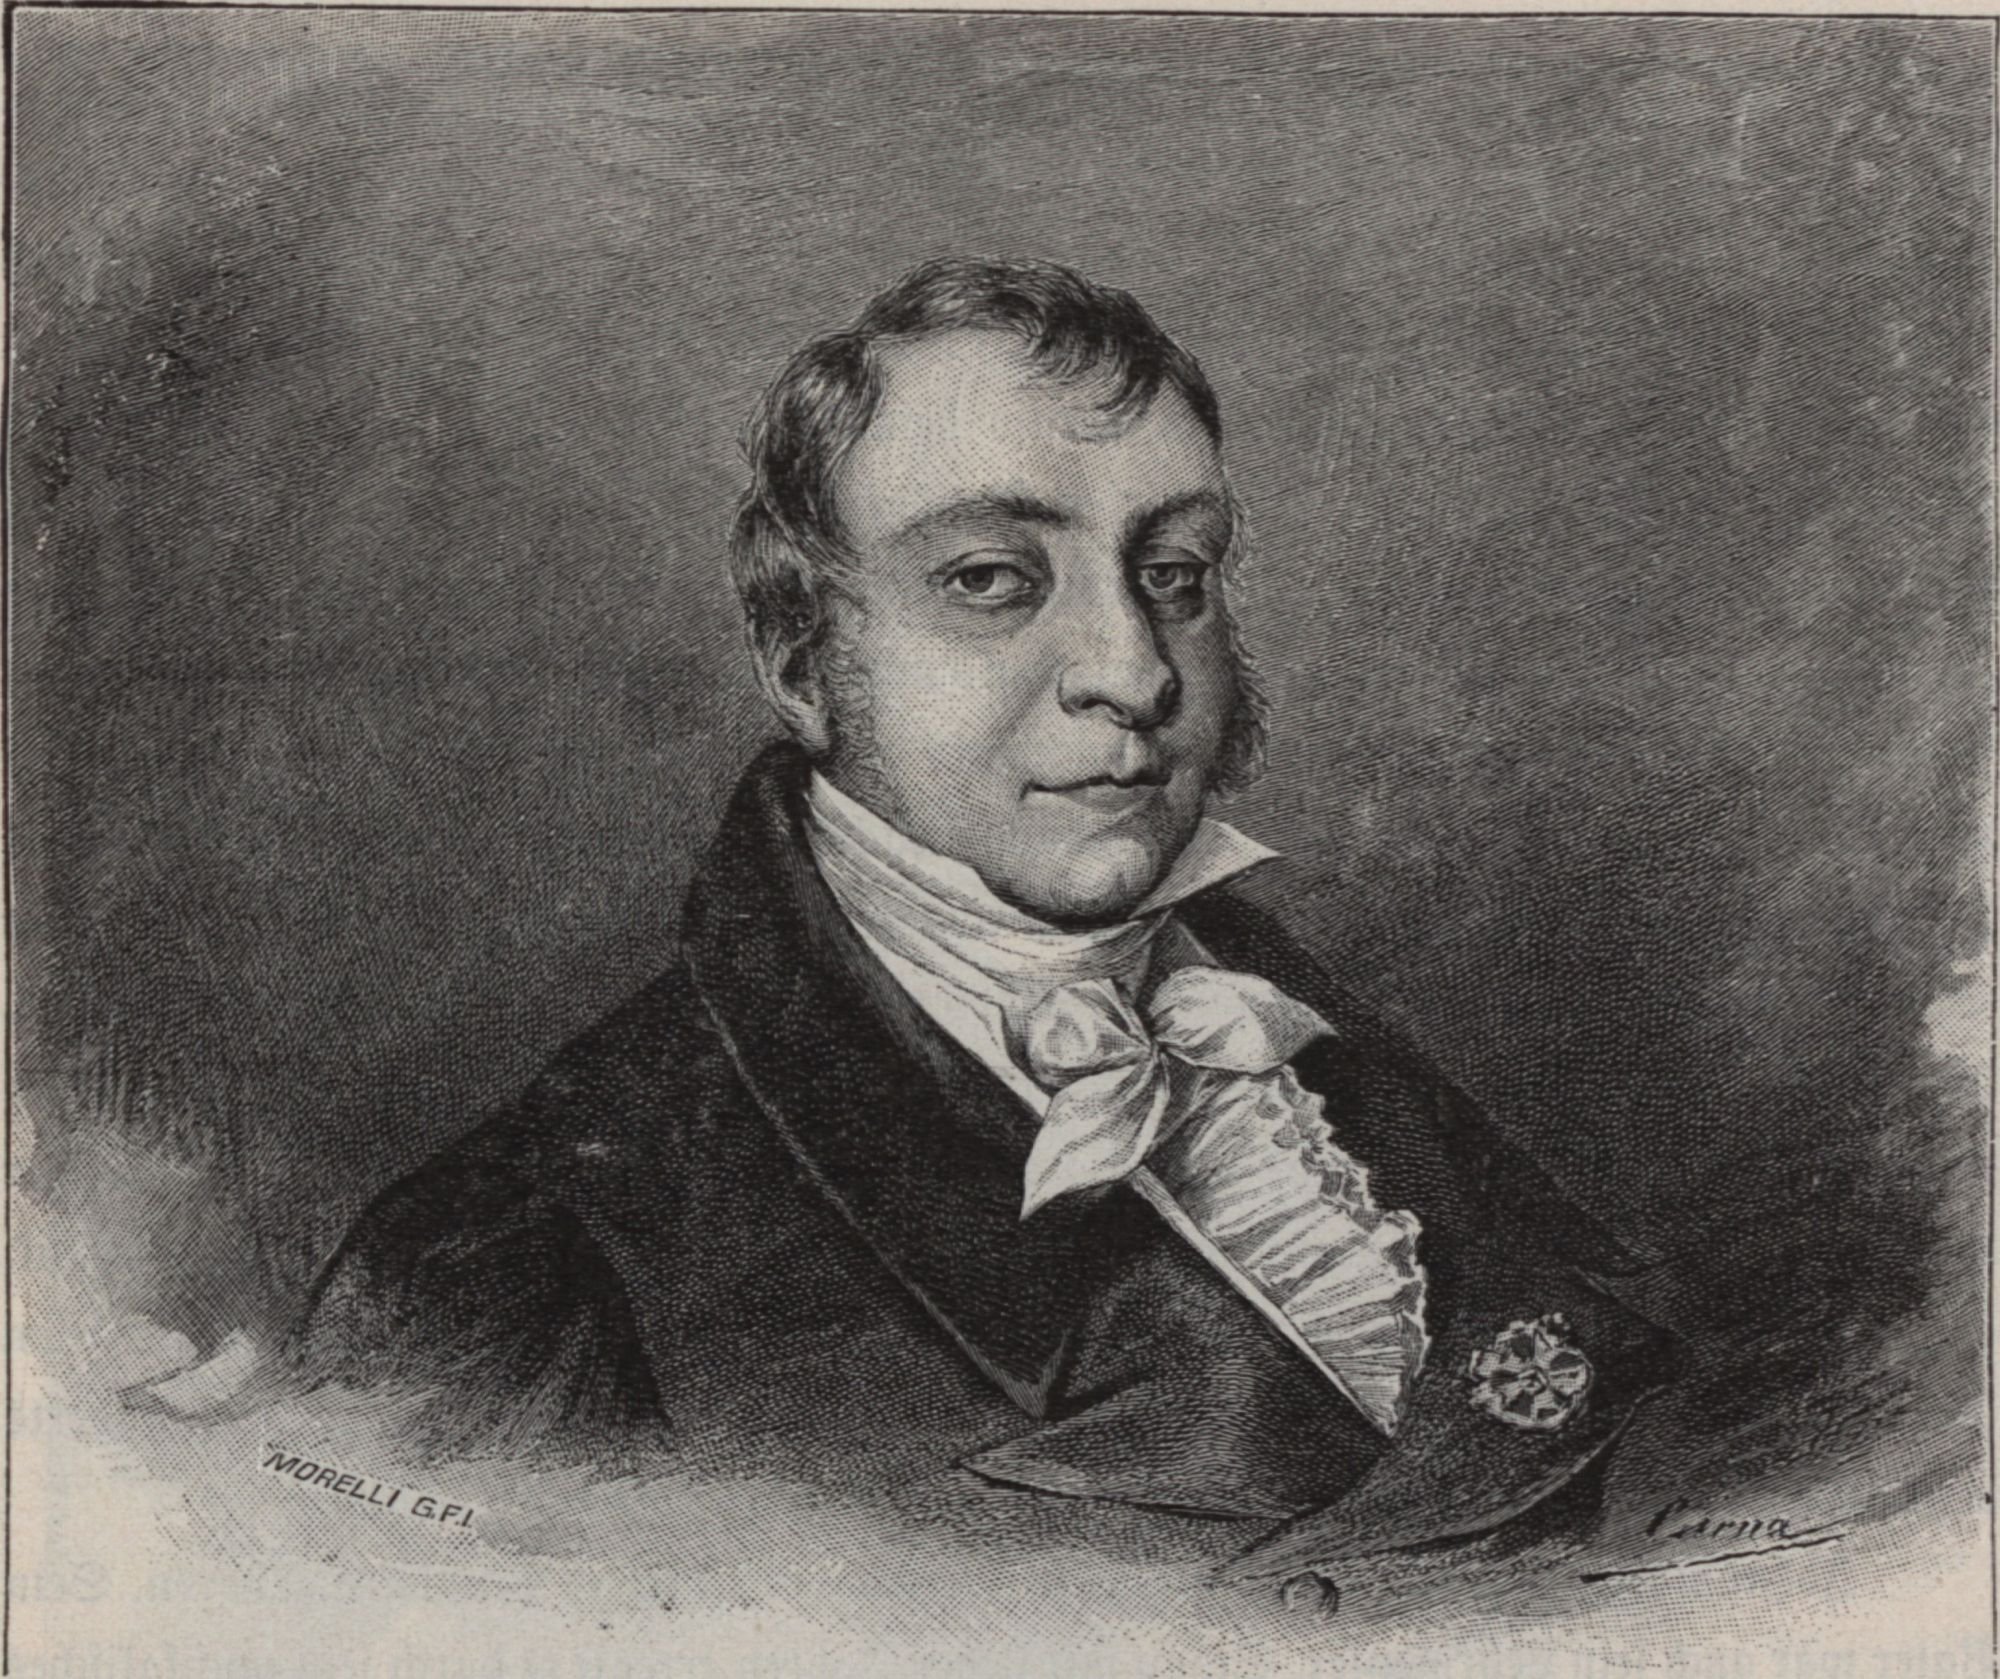 An idealized portrait of Johann Nepomuk Hummel in his later years